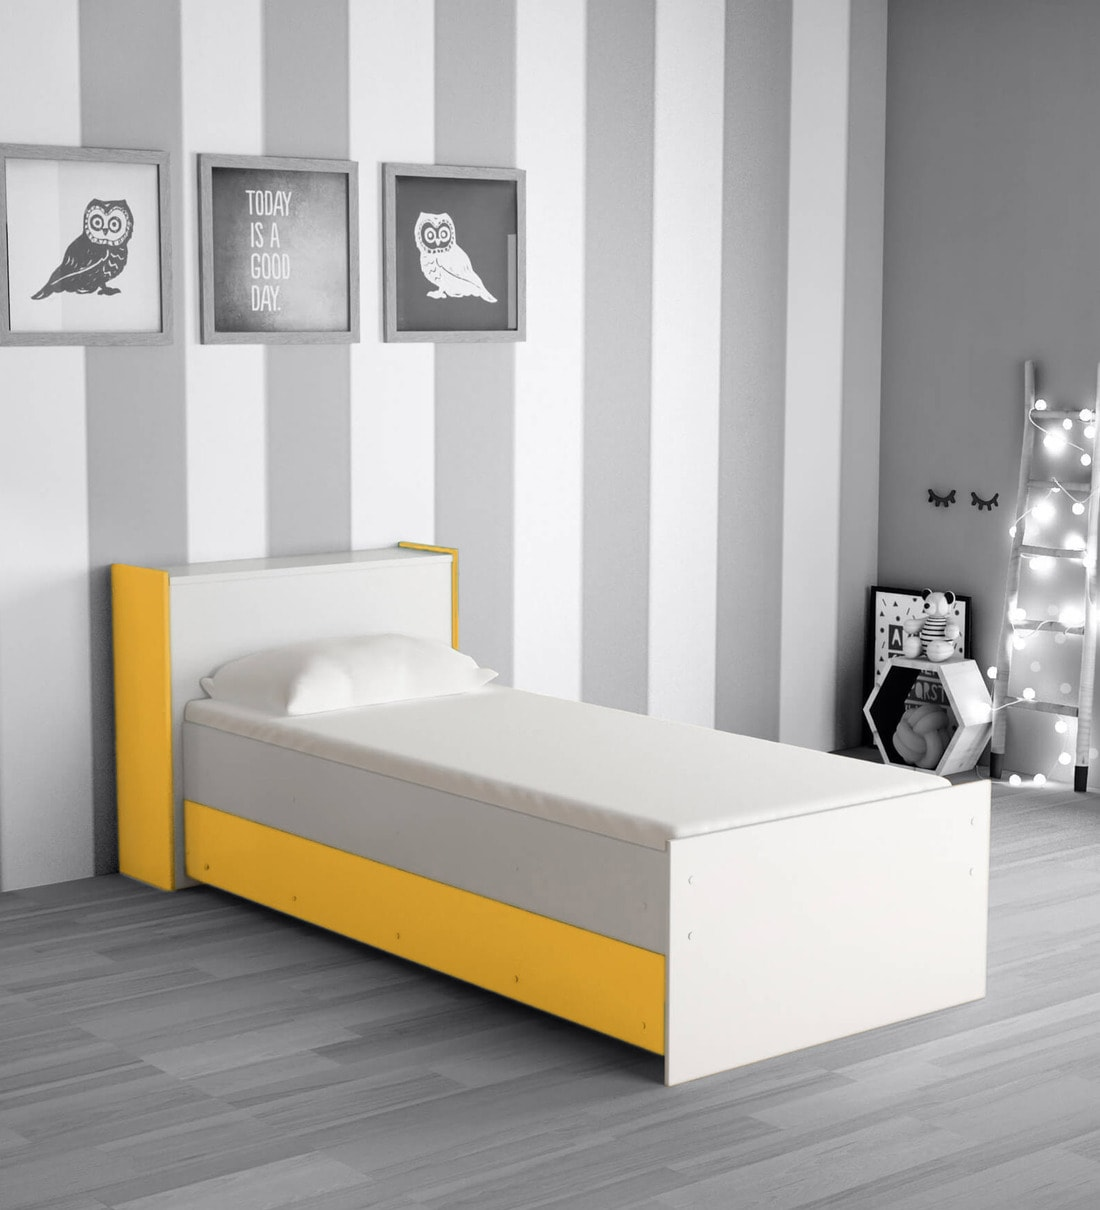 Buy Mczoe Trundle Bed With Headboard Storage In White Yellow Finish By Mollycoddle Online Trundle Beds Beds Furniture Pepperfry Product